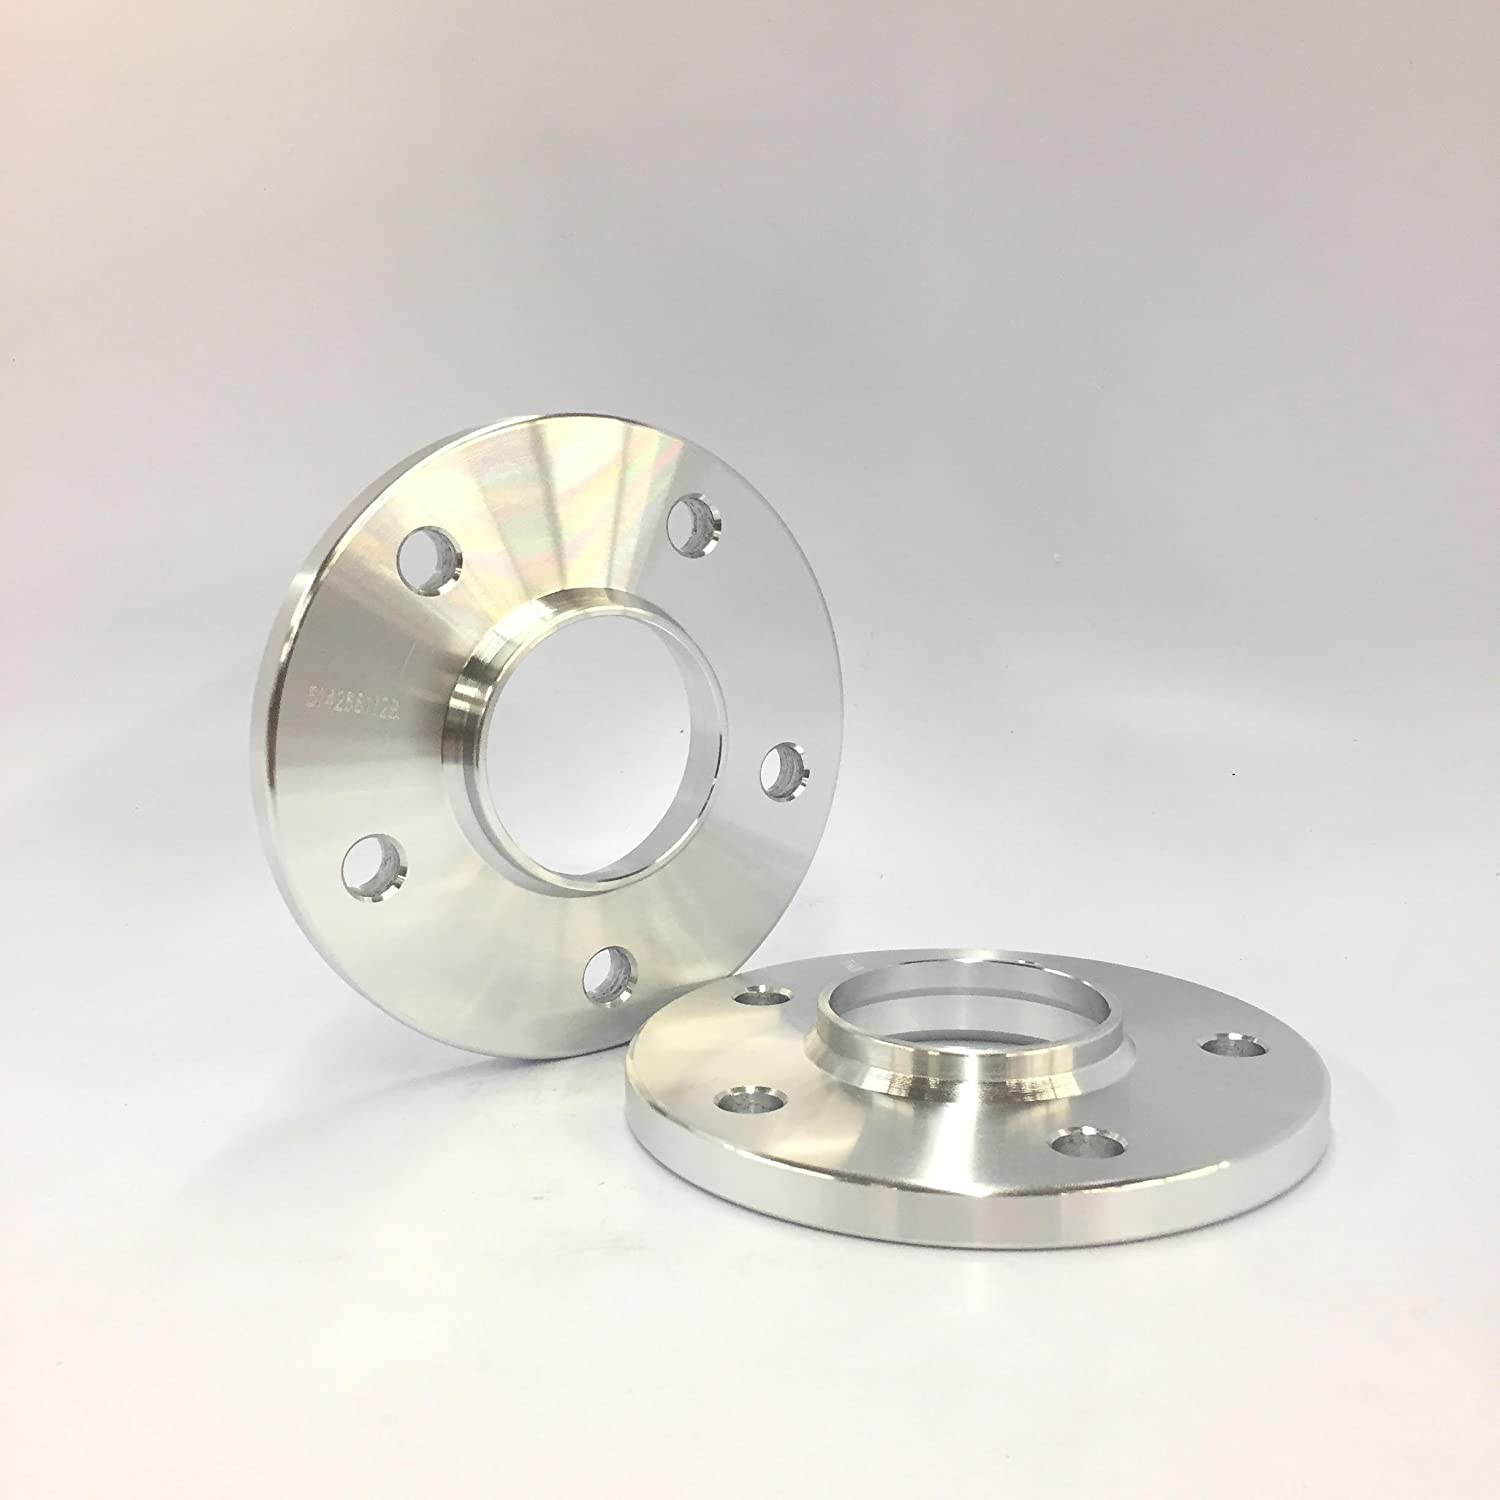 Customadeonly 2 Pieces 0.47 12mm Hub Centric Wheel Spacers Bolt Pattern 5x114.3 Thread Pitch 12x1.5 Center Bore 60.1mm Fits Lexus Toyota